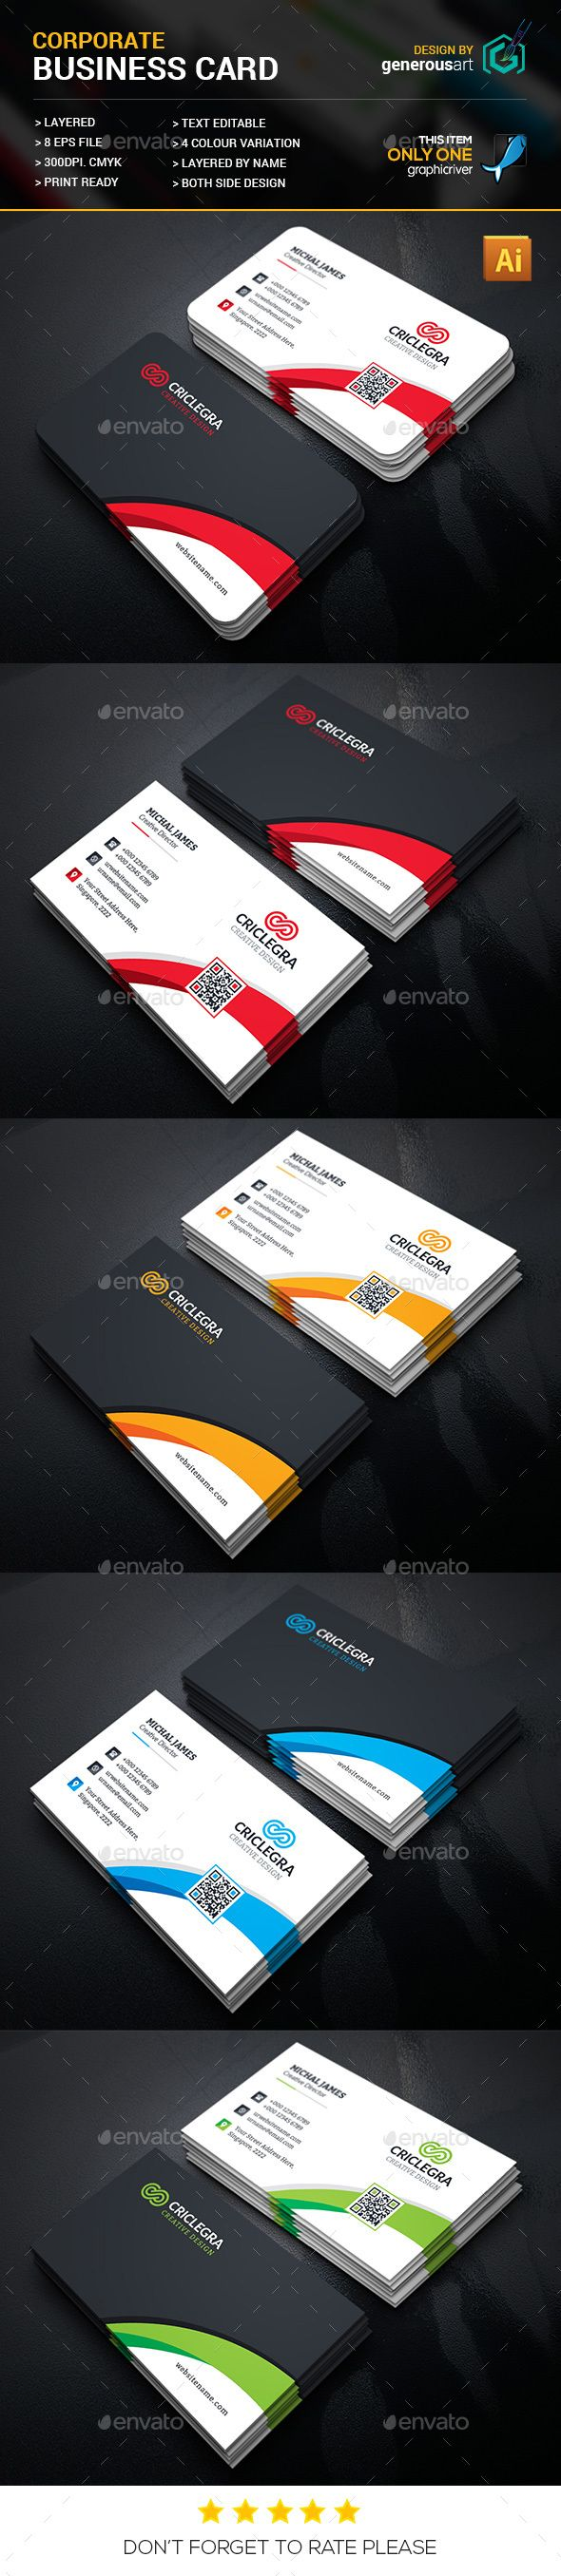 44 best plastic business cards images on pinterest plastic corporate business card design corporate business card template vector eps vector ai download alramifo Image collections